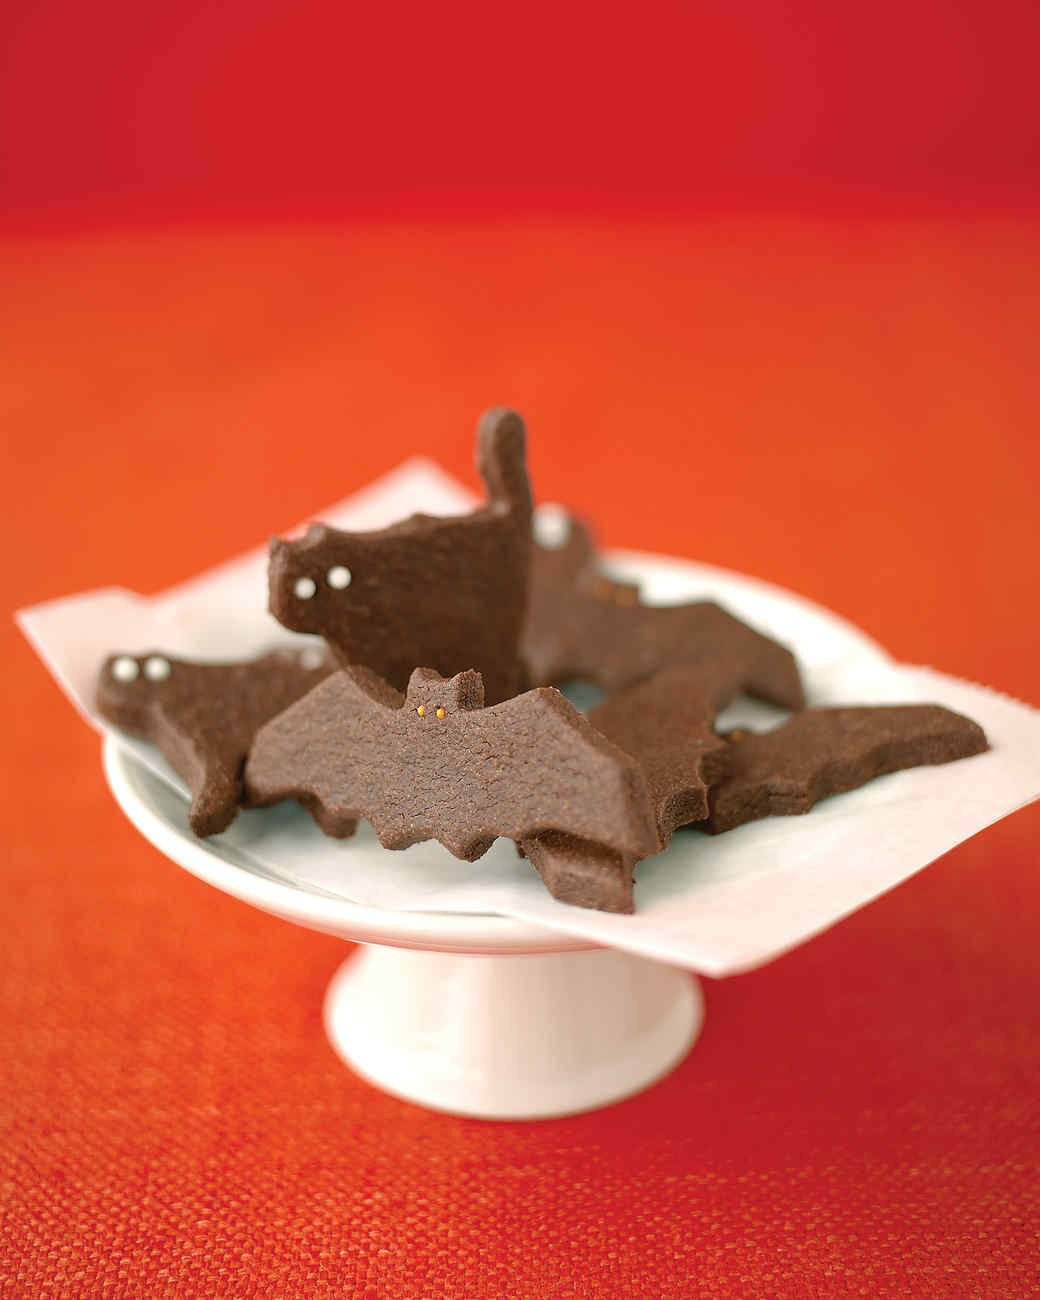 Recipes For Halloween Cookies  Ghostly Bat and Cat Cookies Recipe